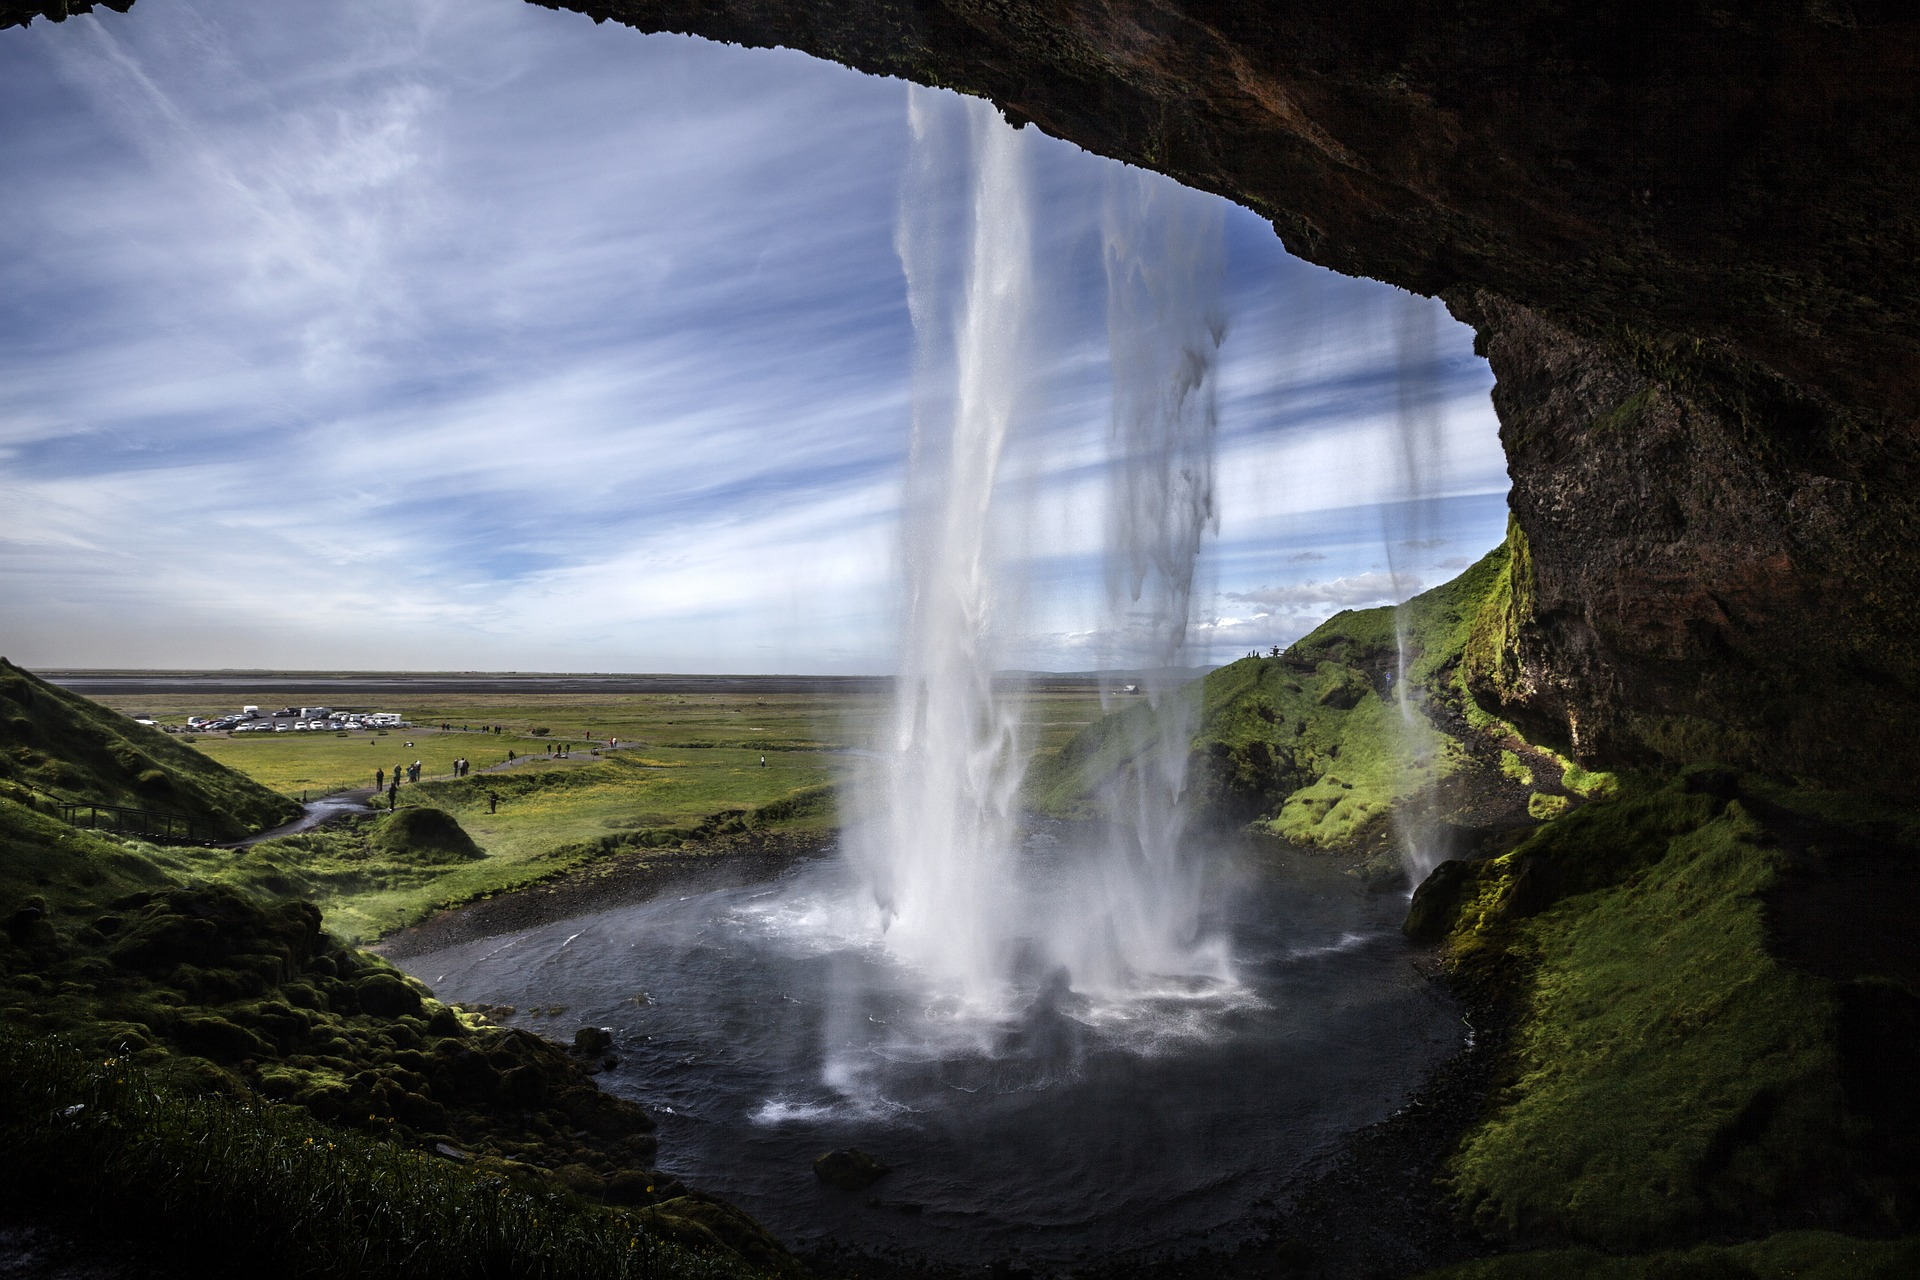 Walking behind Seljalandsfoss waterfall is an unforgettable experience